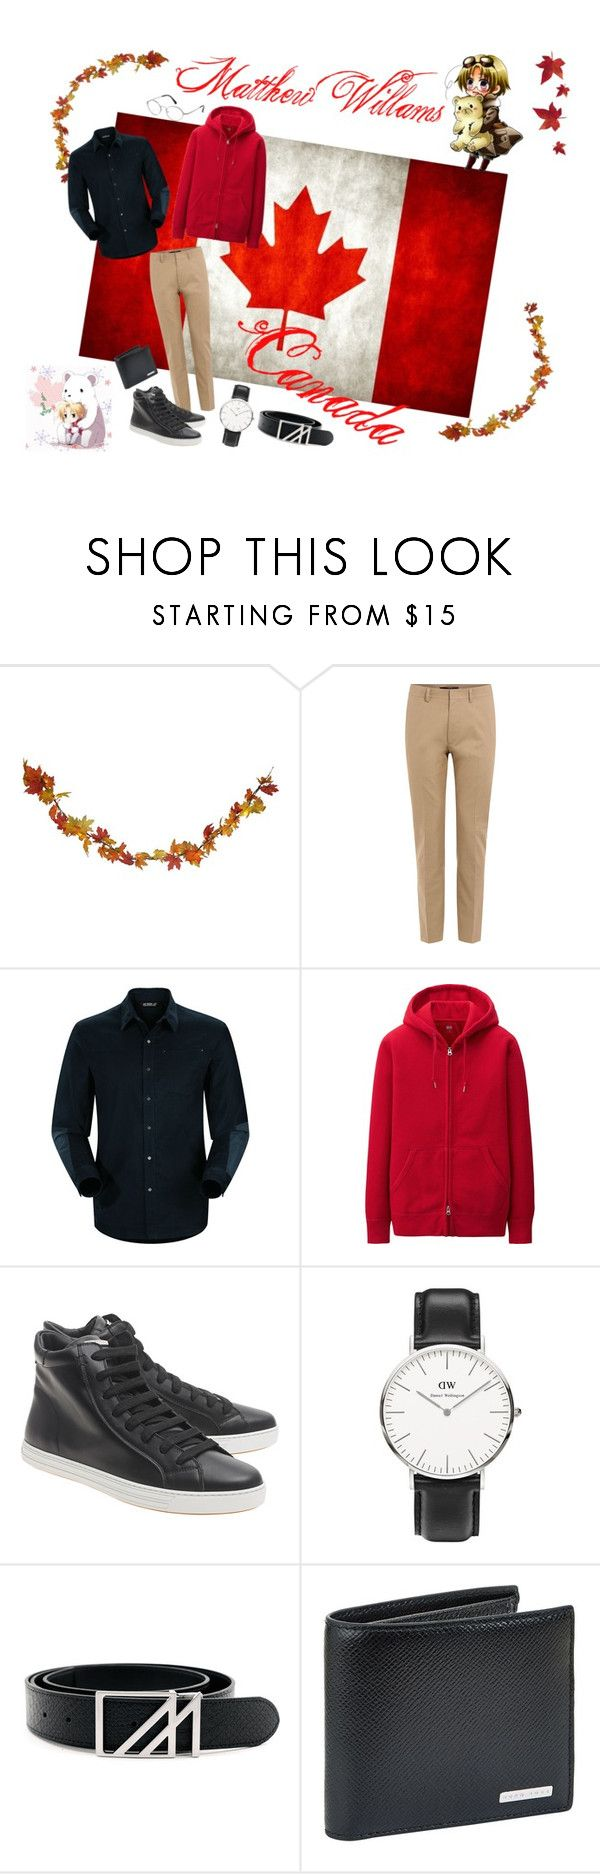 """Canada"" by meingottstopp19 ❤ liked on Polyvore featuring Polar, Valentino, Arc'teryx, Uniqlo, Dsquared2, Daniel Wellington, Mint, BOSS Hugo Boss, Tom Ford and men's fashion"